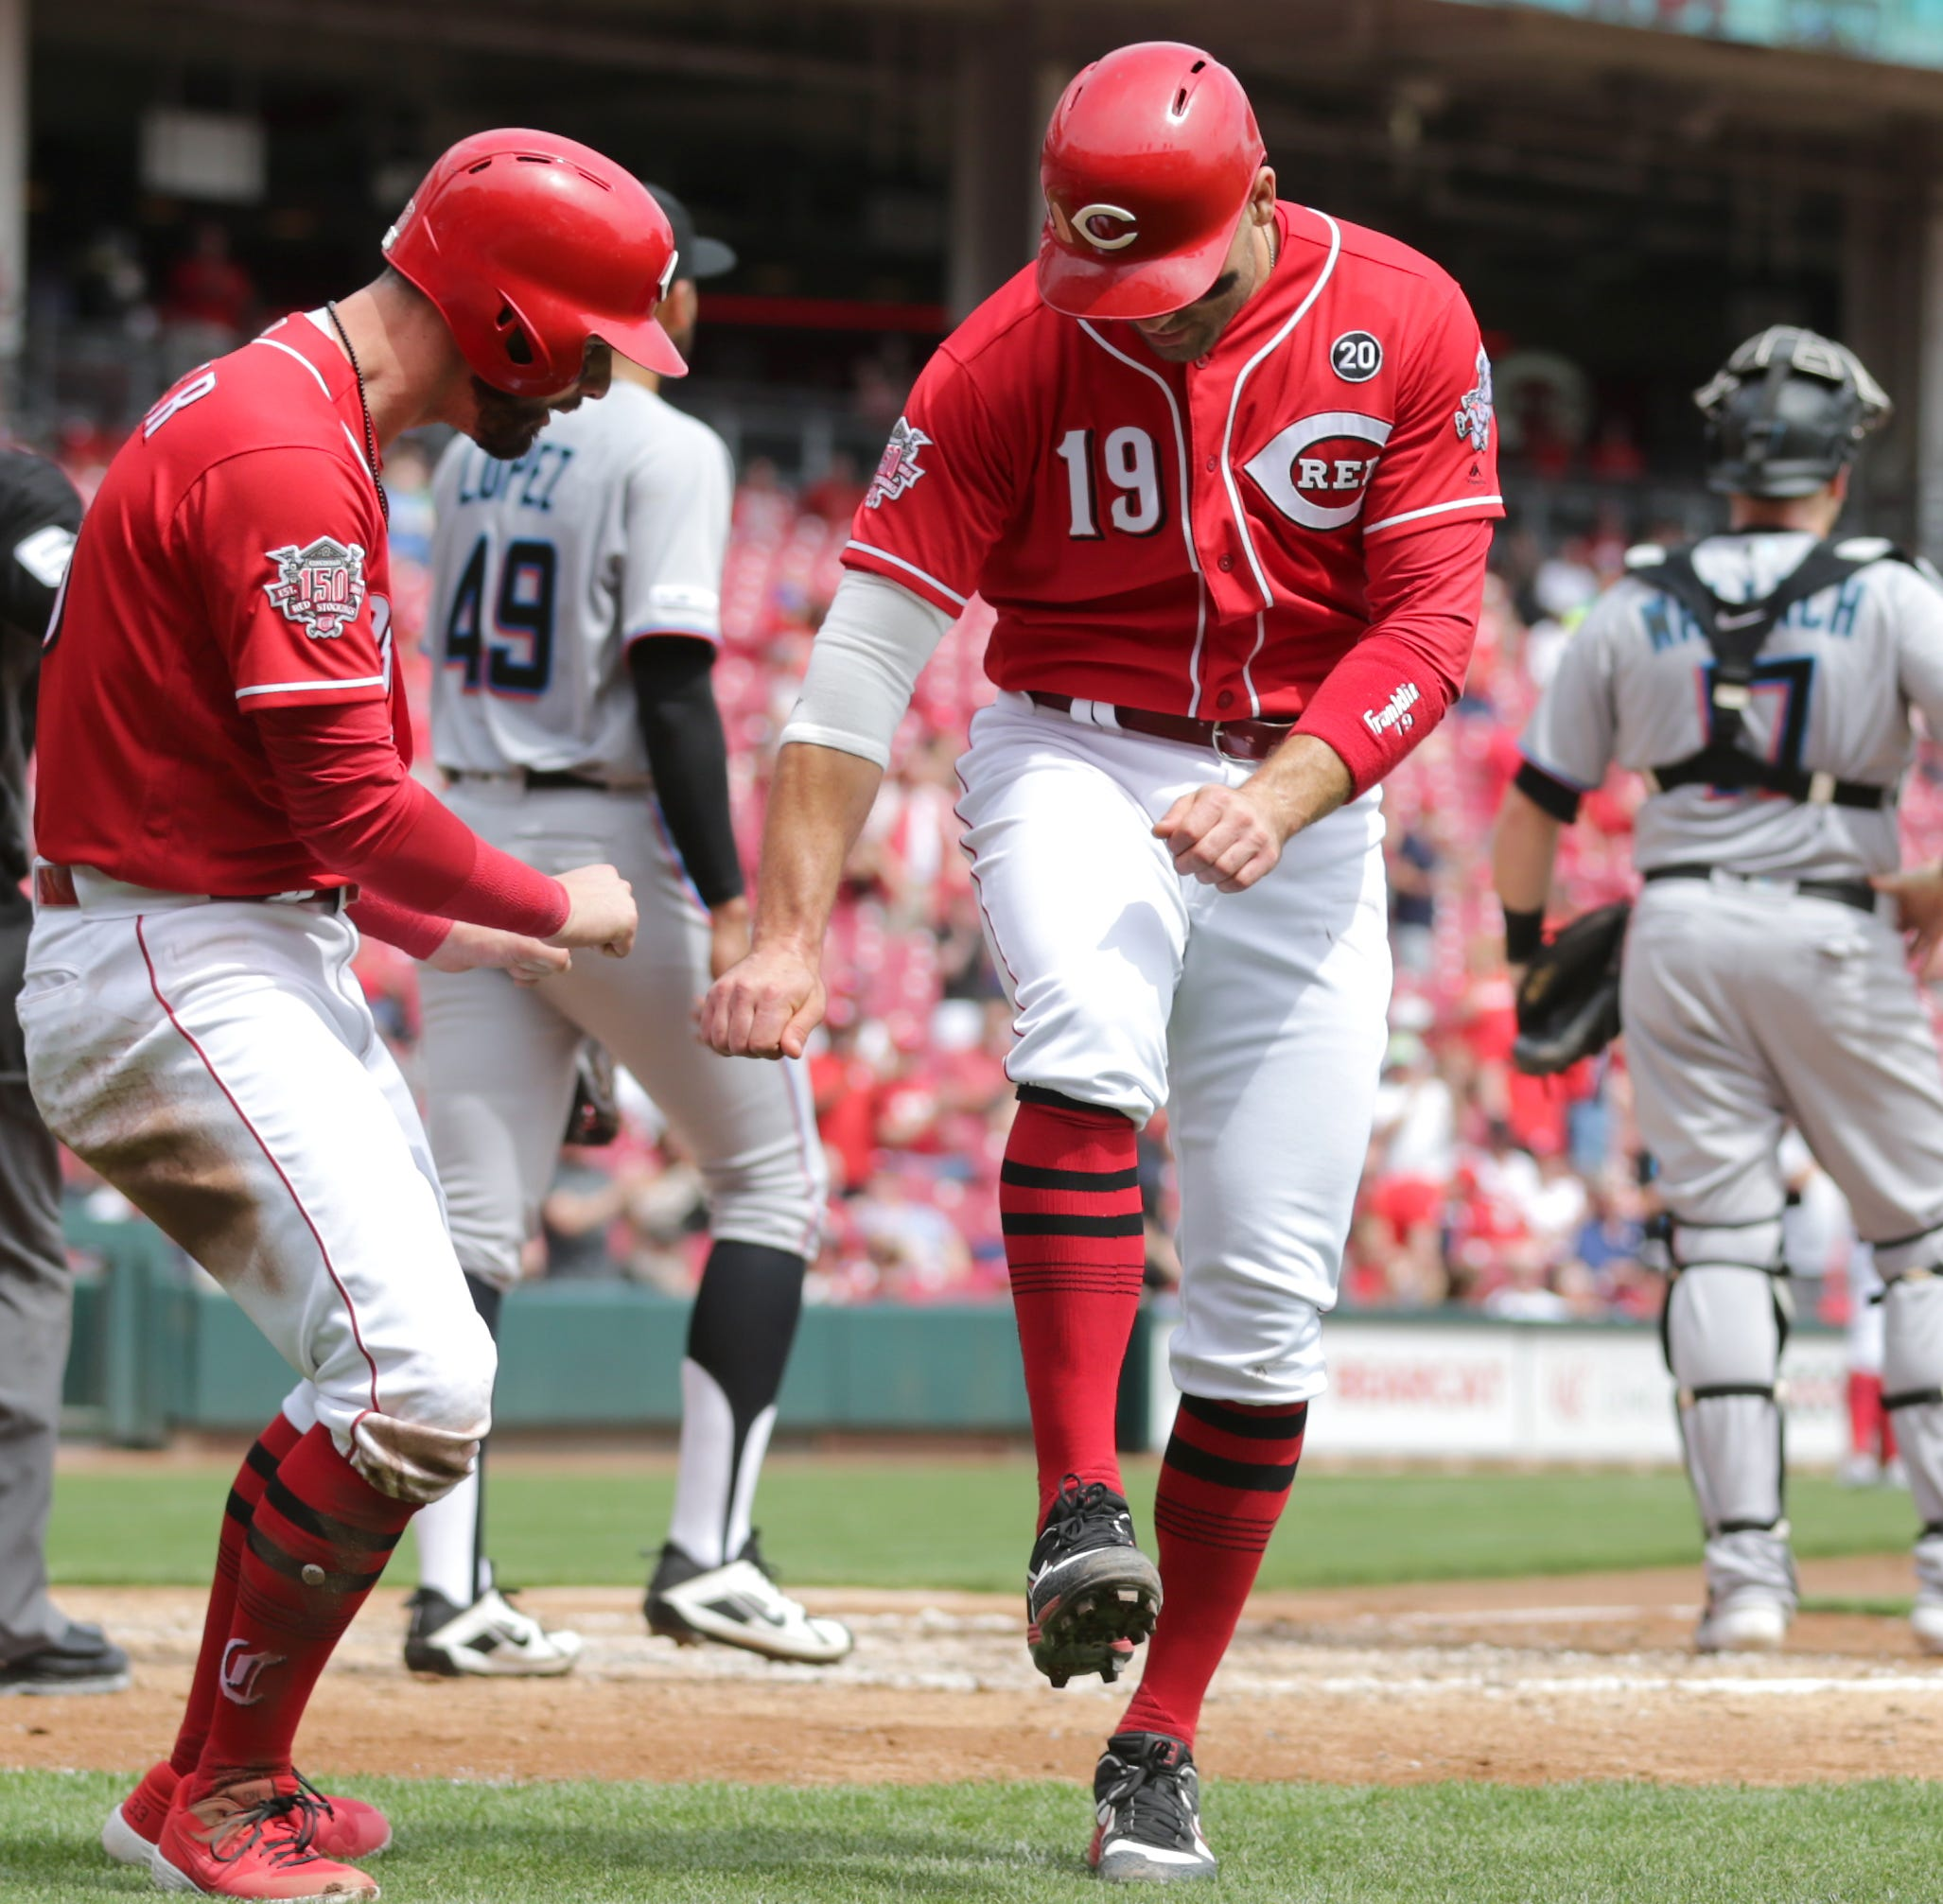 Watch: Joey Votto, Jesse Winker celebrate with trust fall